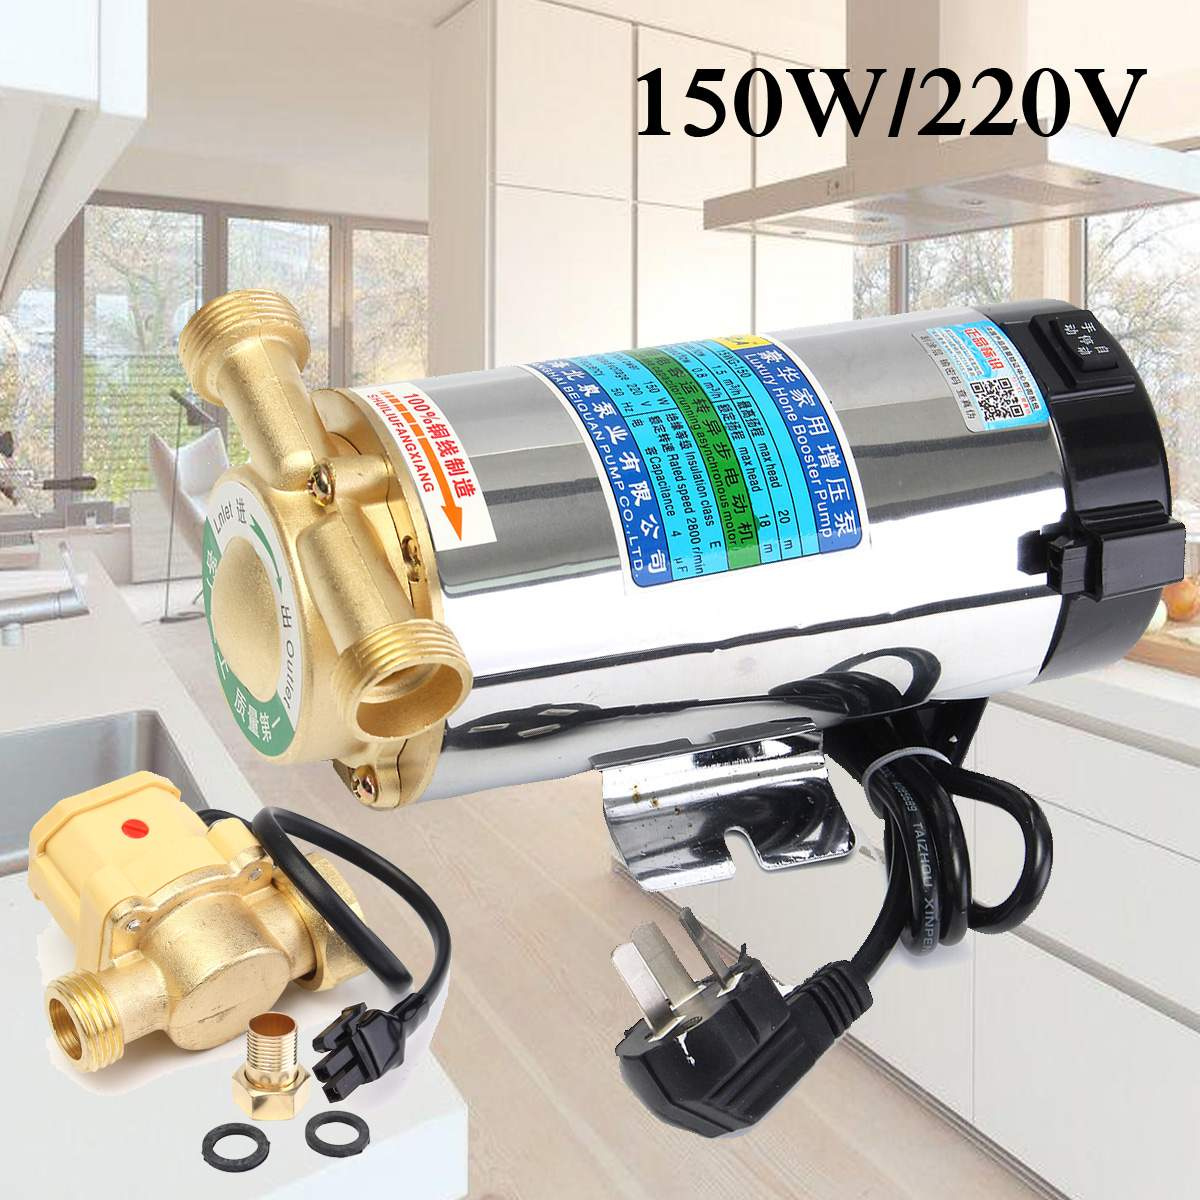 150W Mini Pipeline Pump Automatic Circulating Water Booster Pump 220V/50HZ Electric Pressure Pump Boosting Pump For Water Heater 100w 220v shower booster water pump